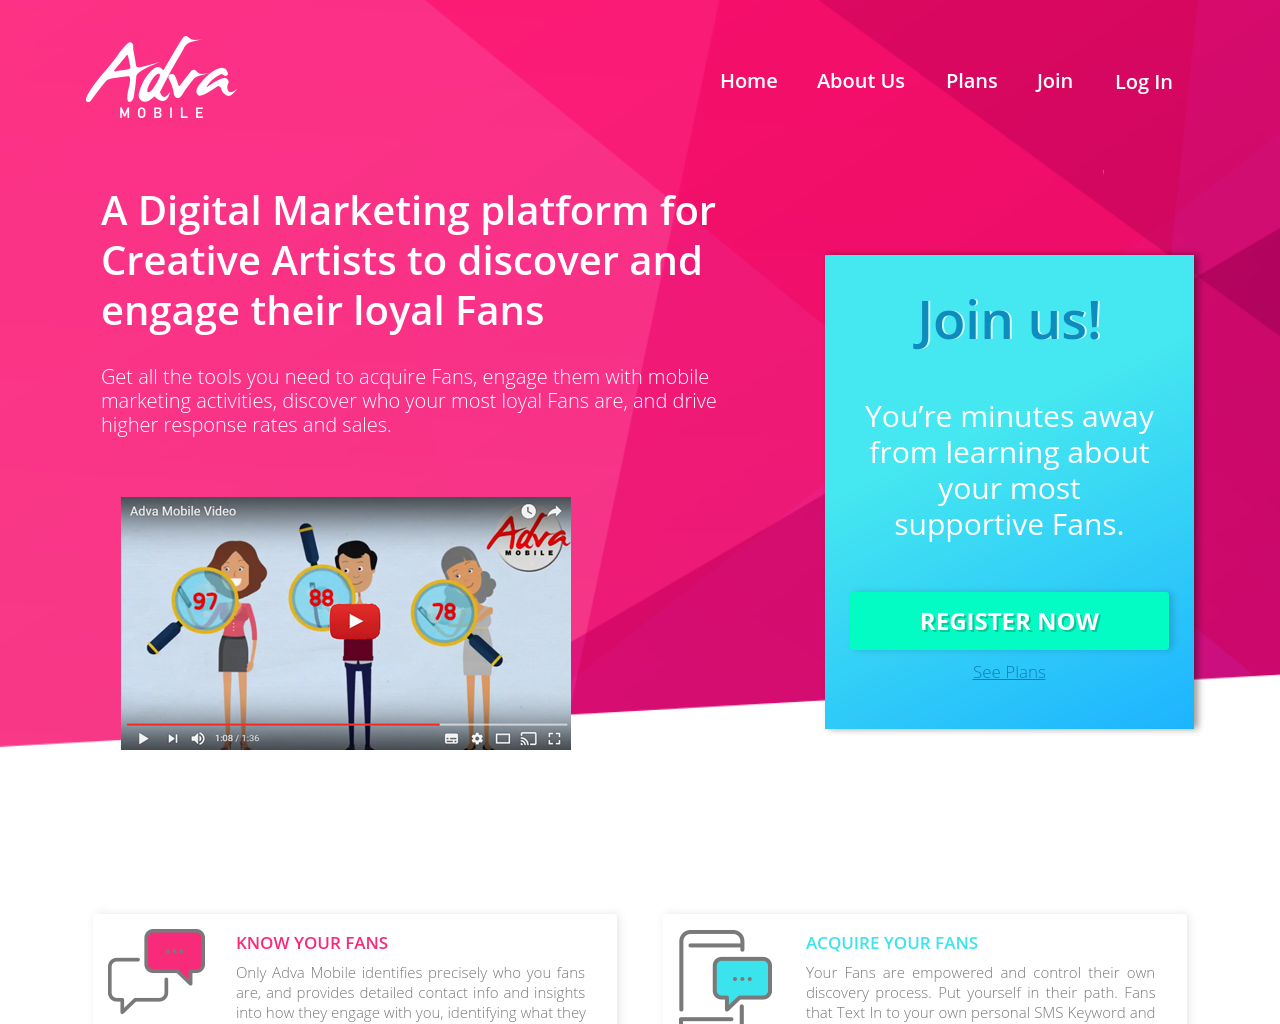 Adva-Mobile-Advertising-Reviews-Pricing